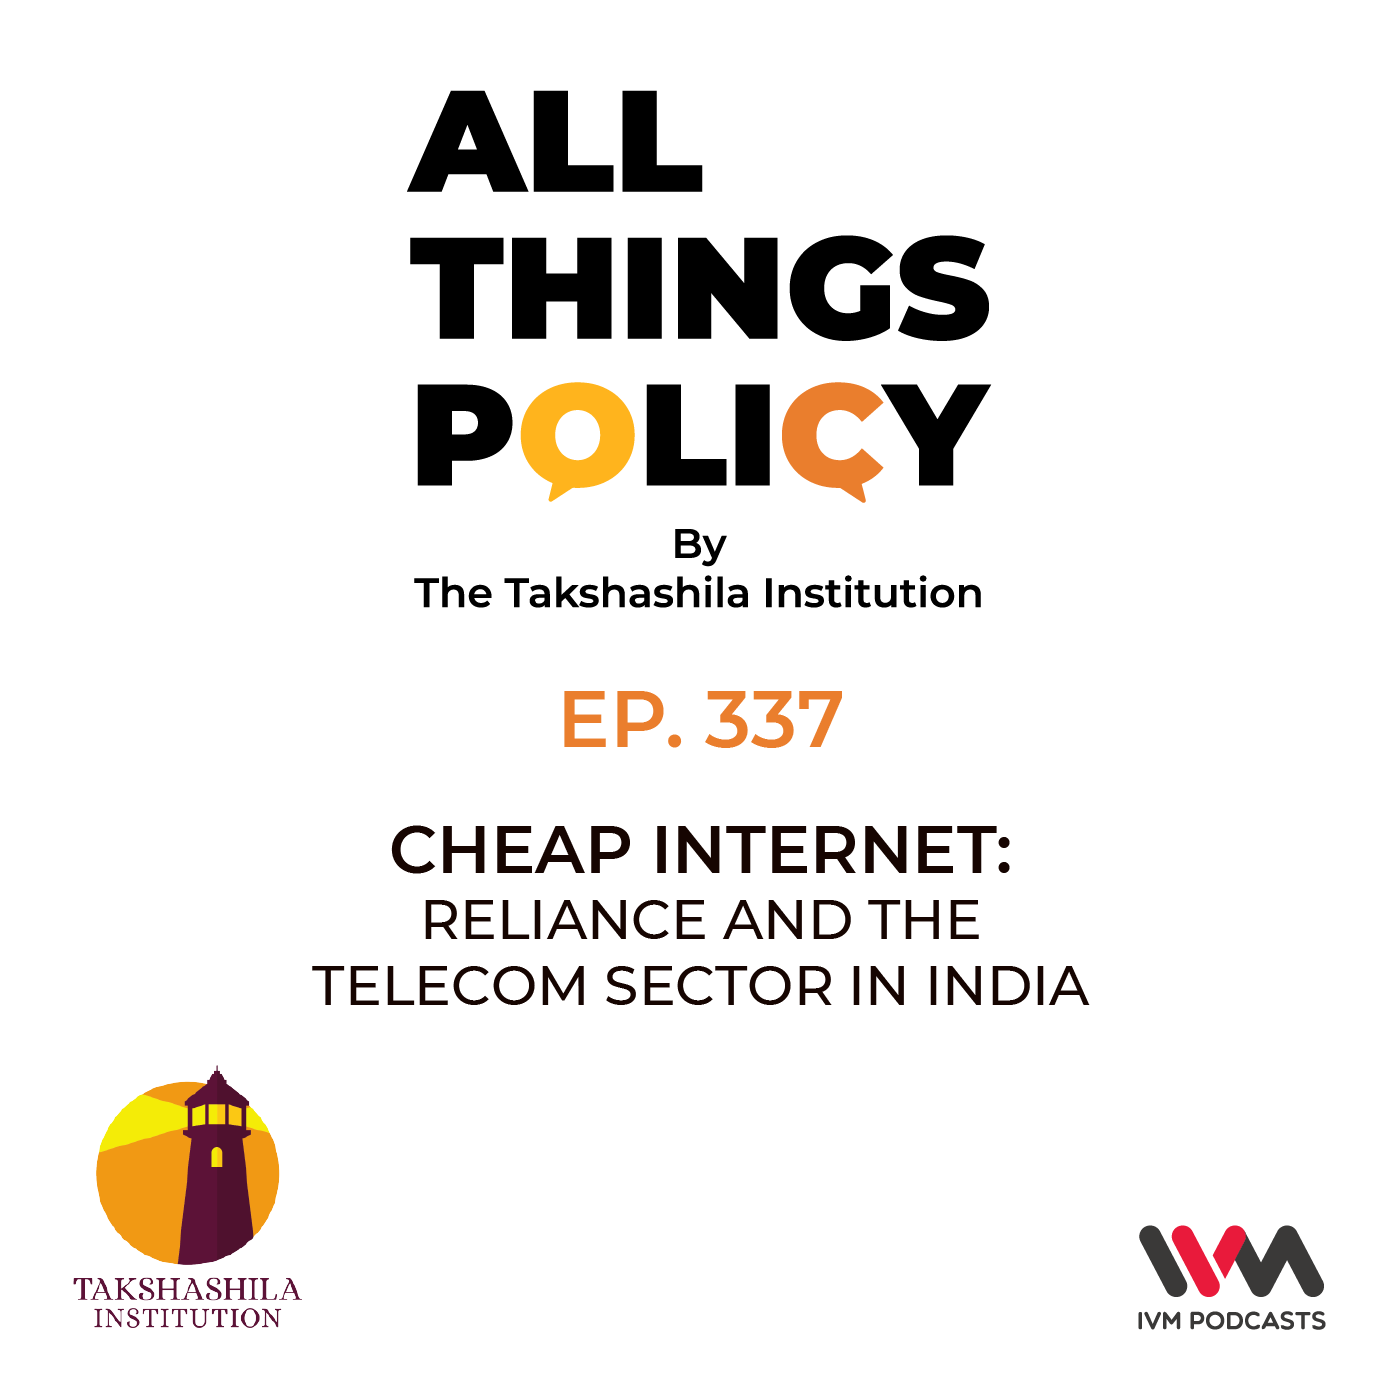 Ep. 337: Cheap Internet: Reliance and the Telecom Sector in India